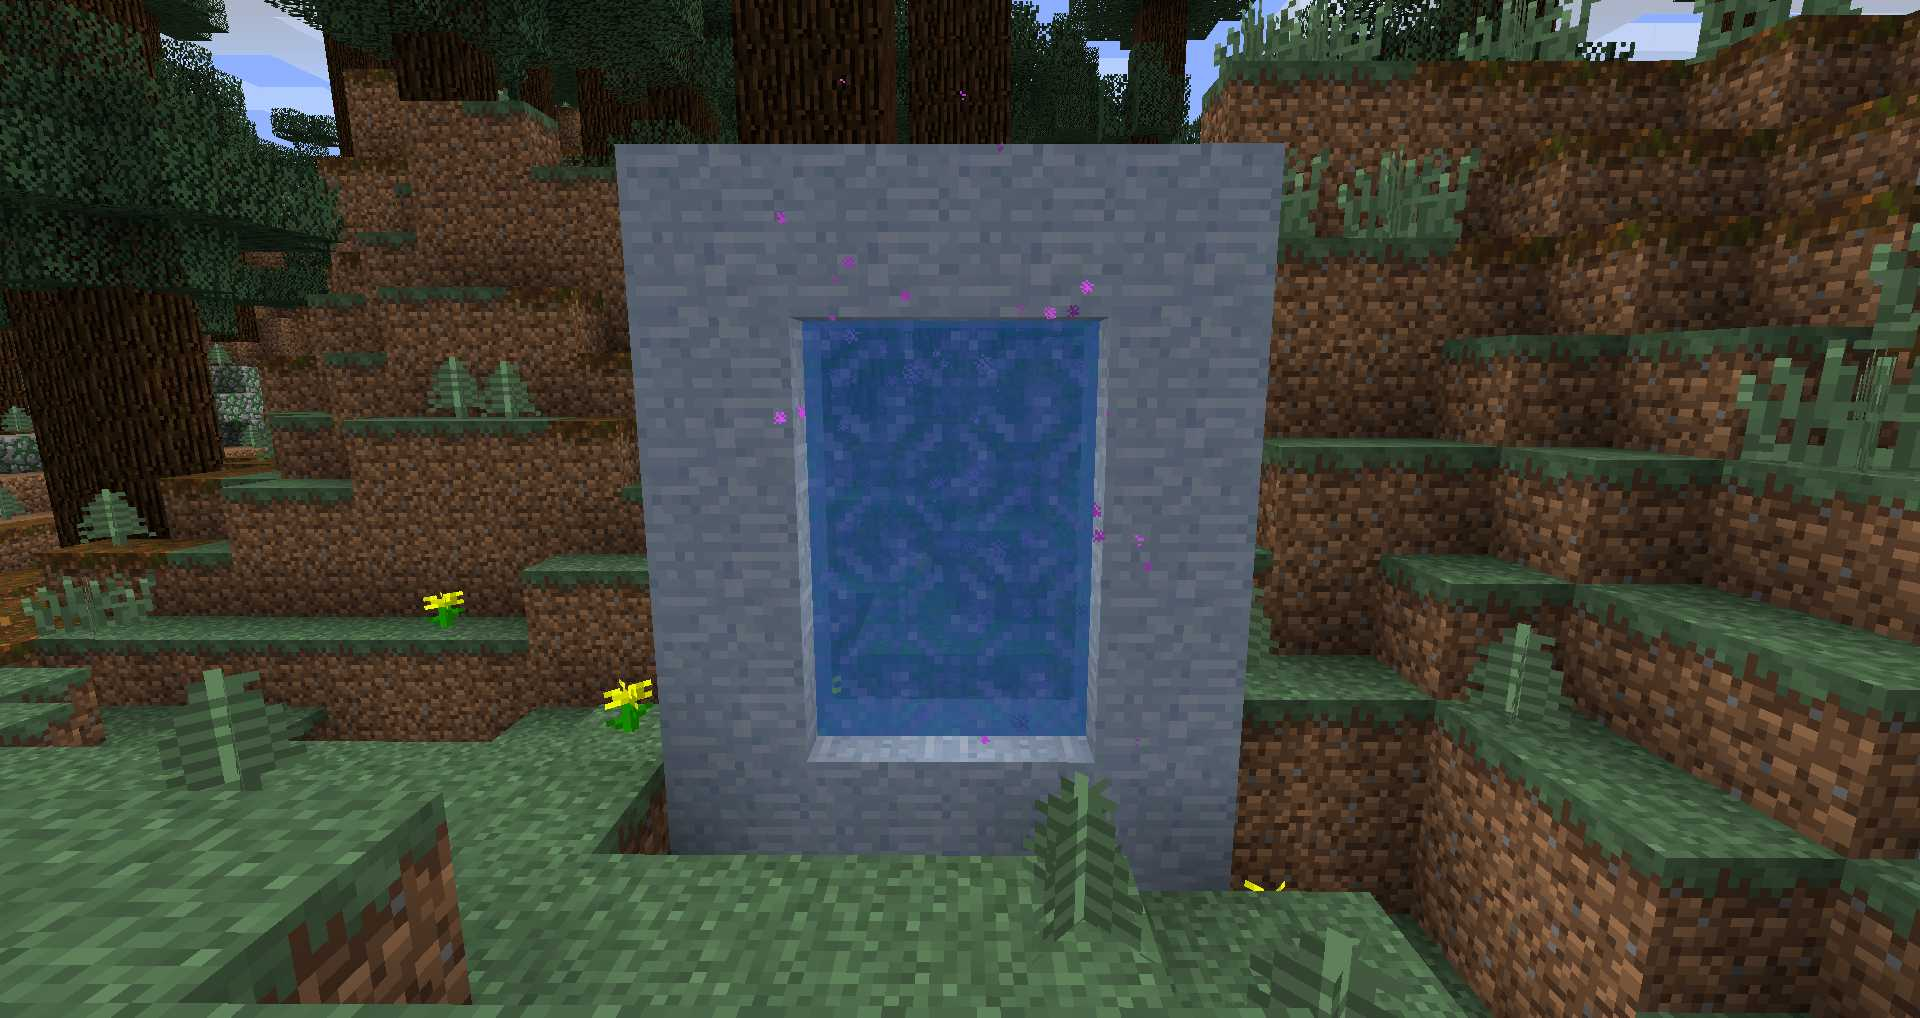 The Real Kether Mod 1710 Minecraftfr